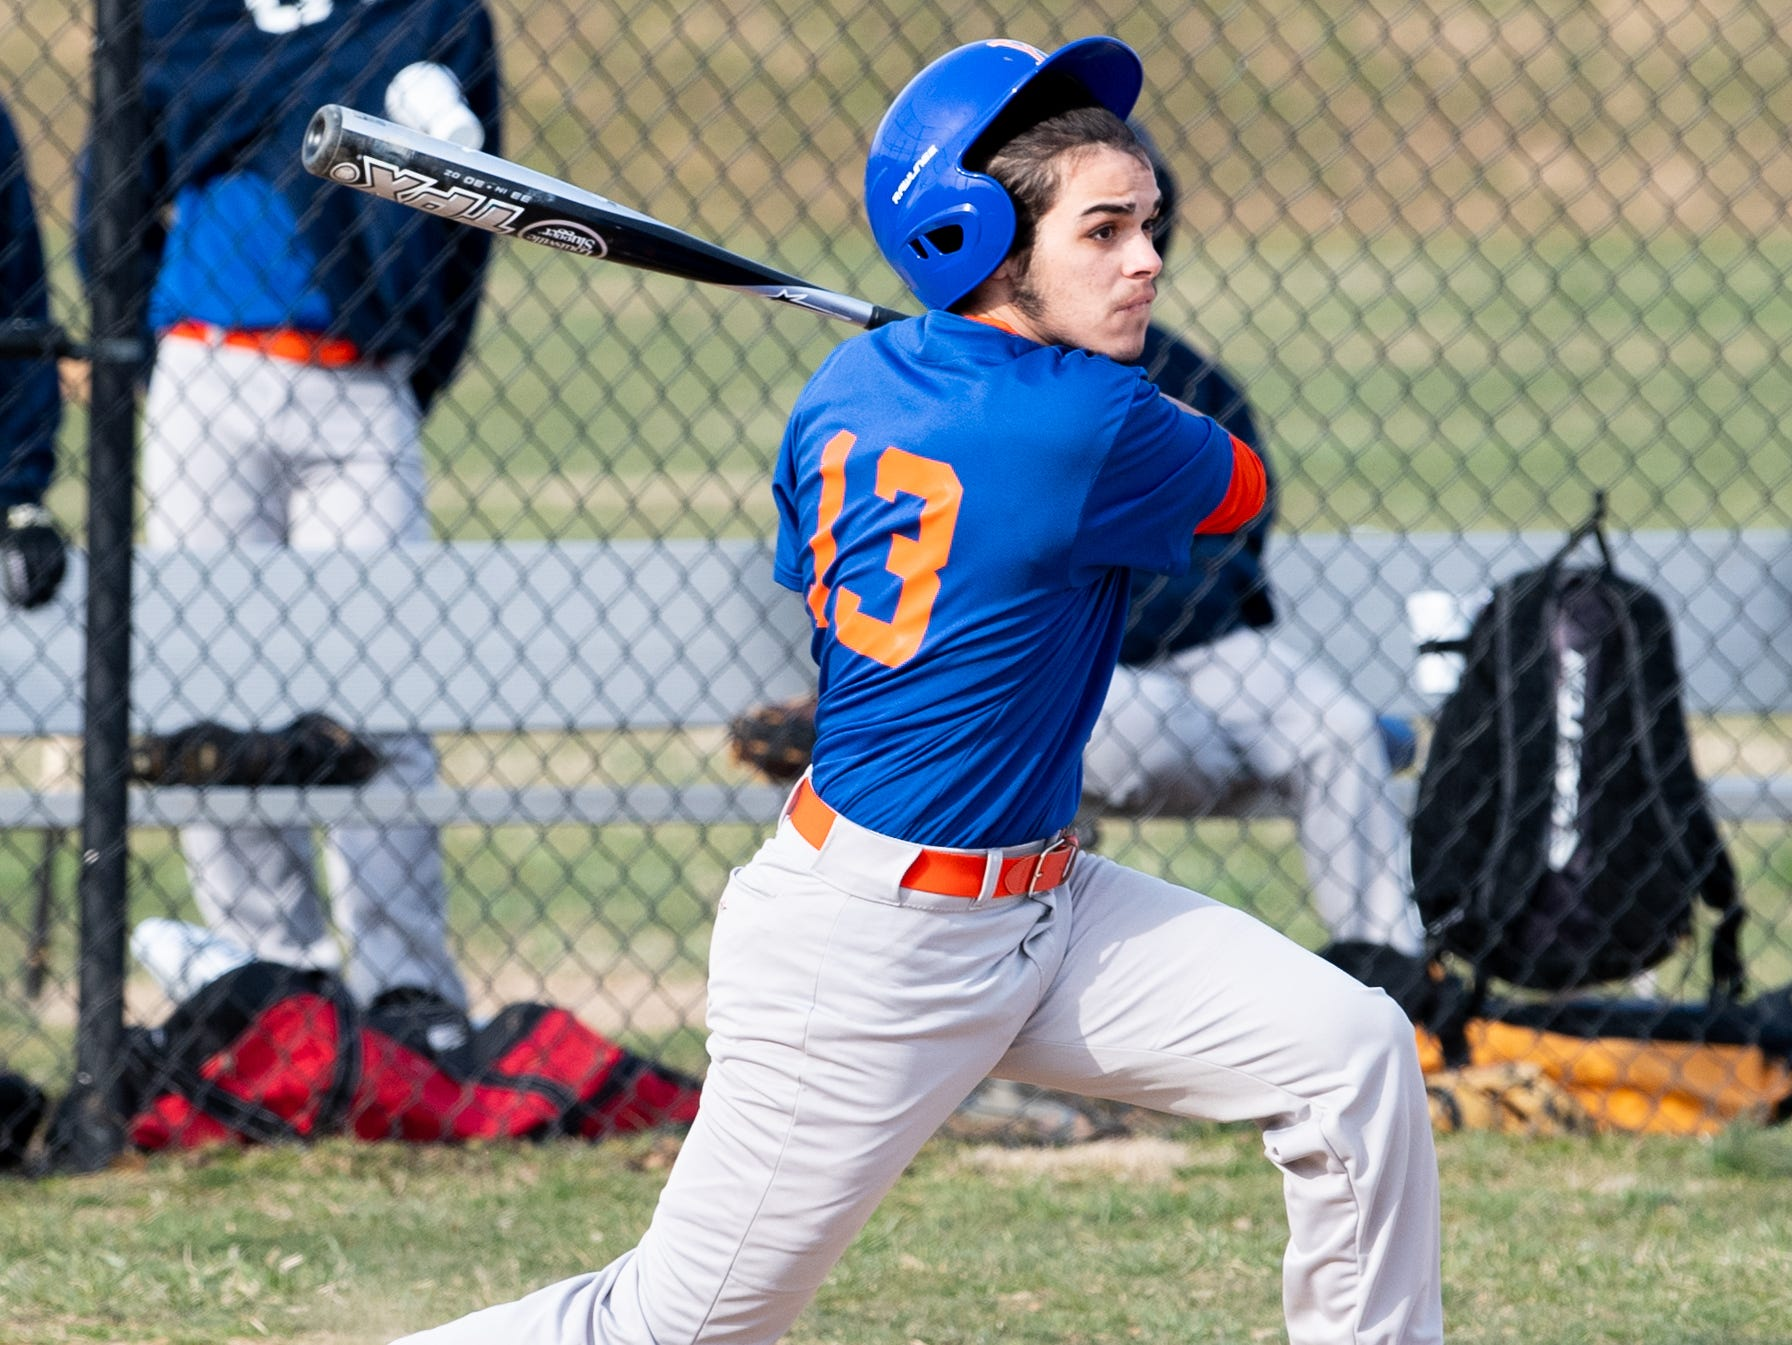 Bryan Soto (13) follows through on his swing during York High's scrimmage against Steel High, March 20, 2019 at Smalls Athletic Field.